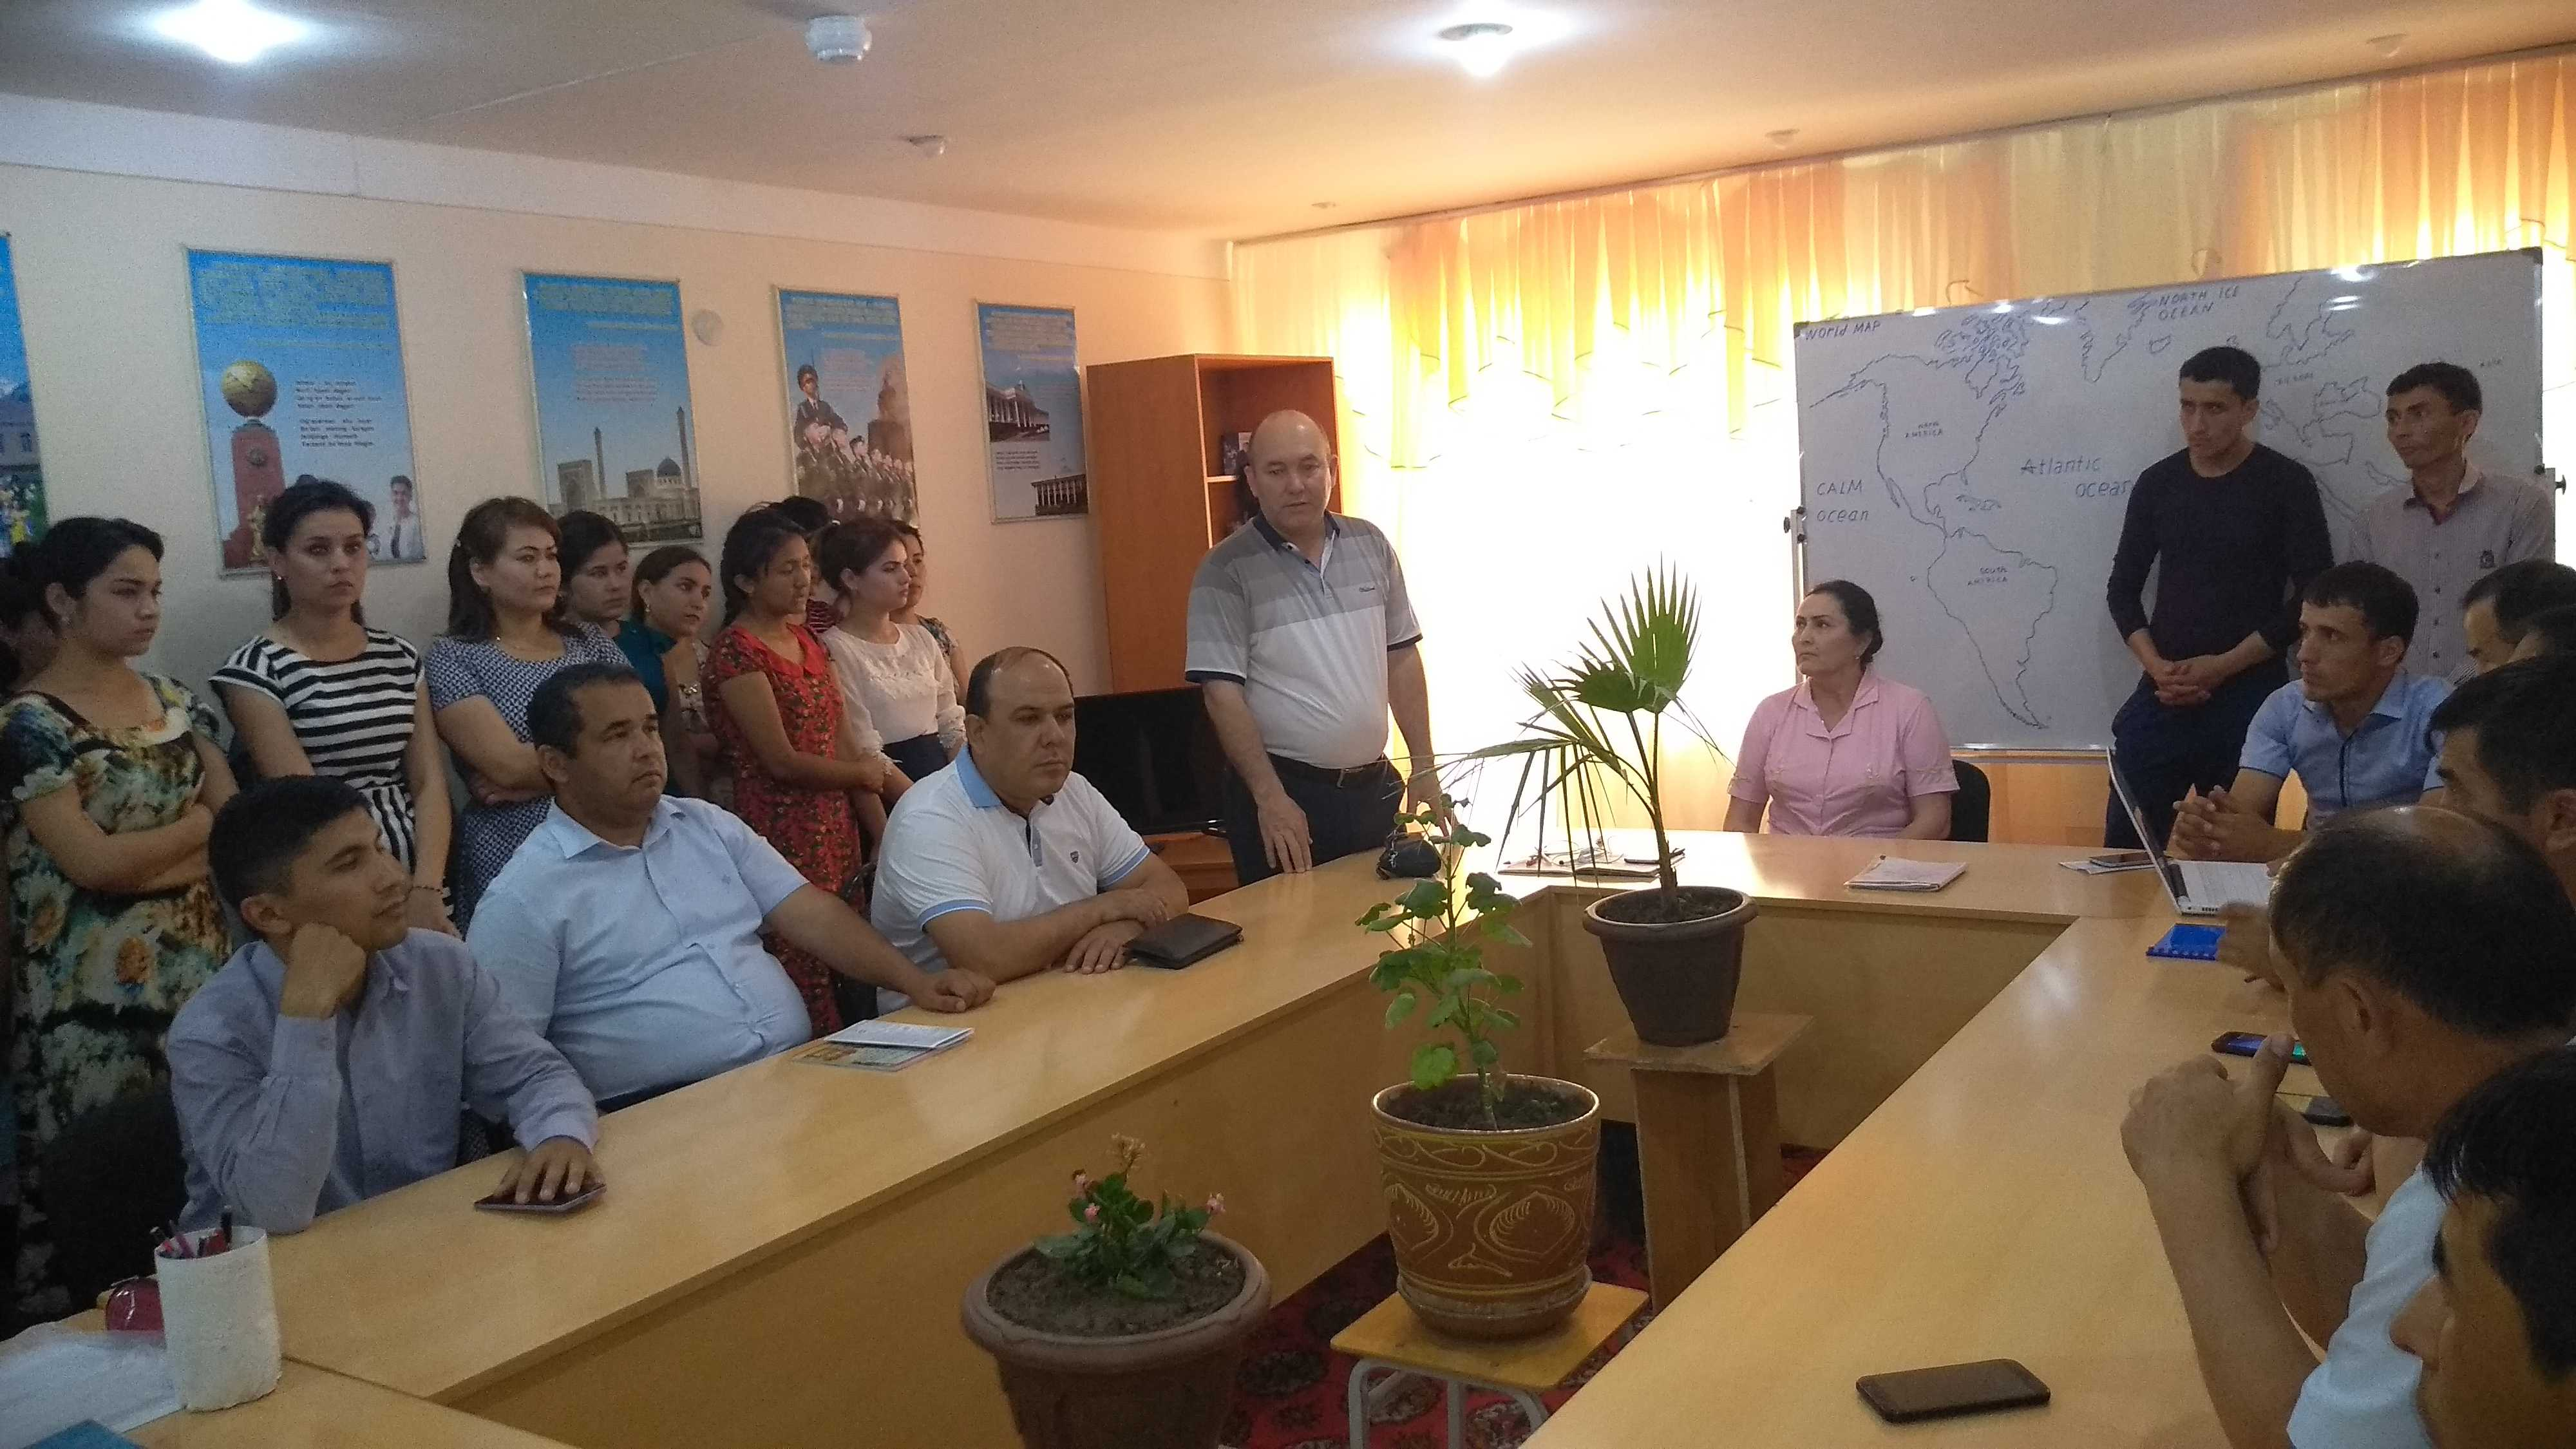 In the last week of May, teachers of the Department of Chemistry, together with the students of the Faculty held the day of the department.